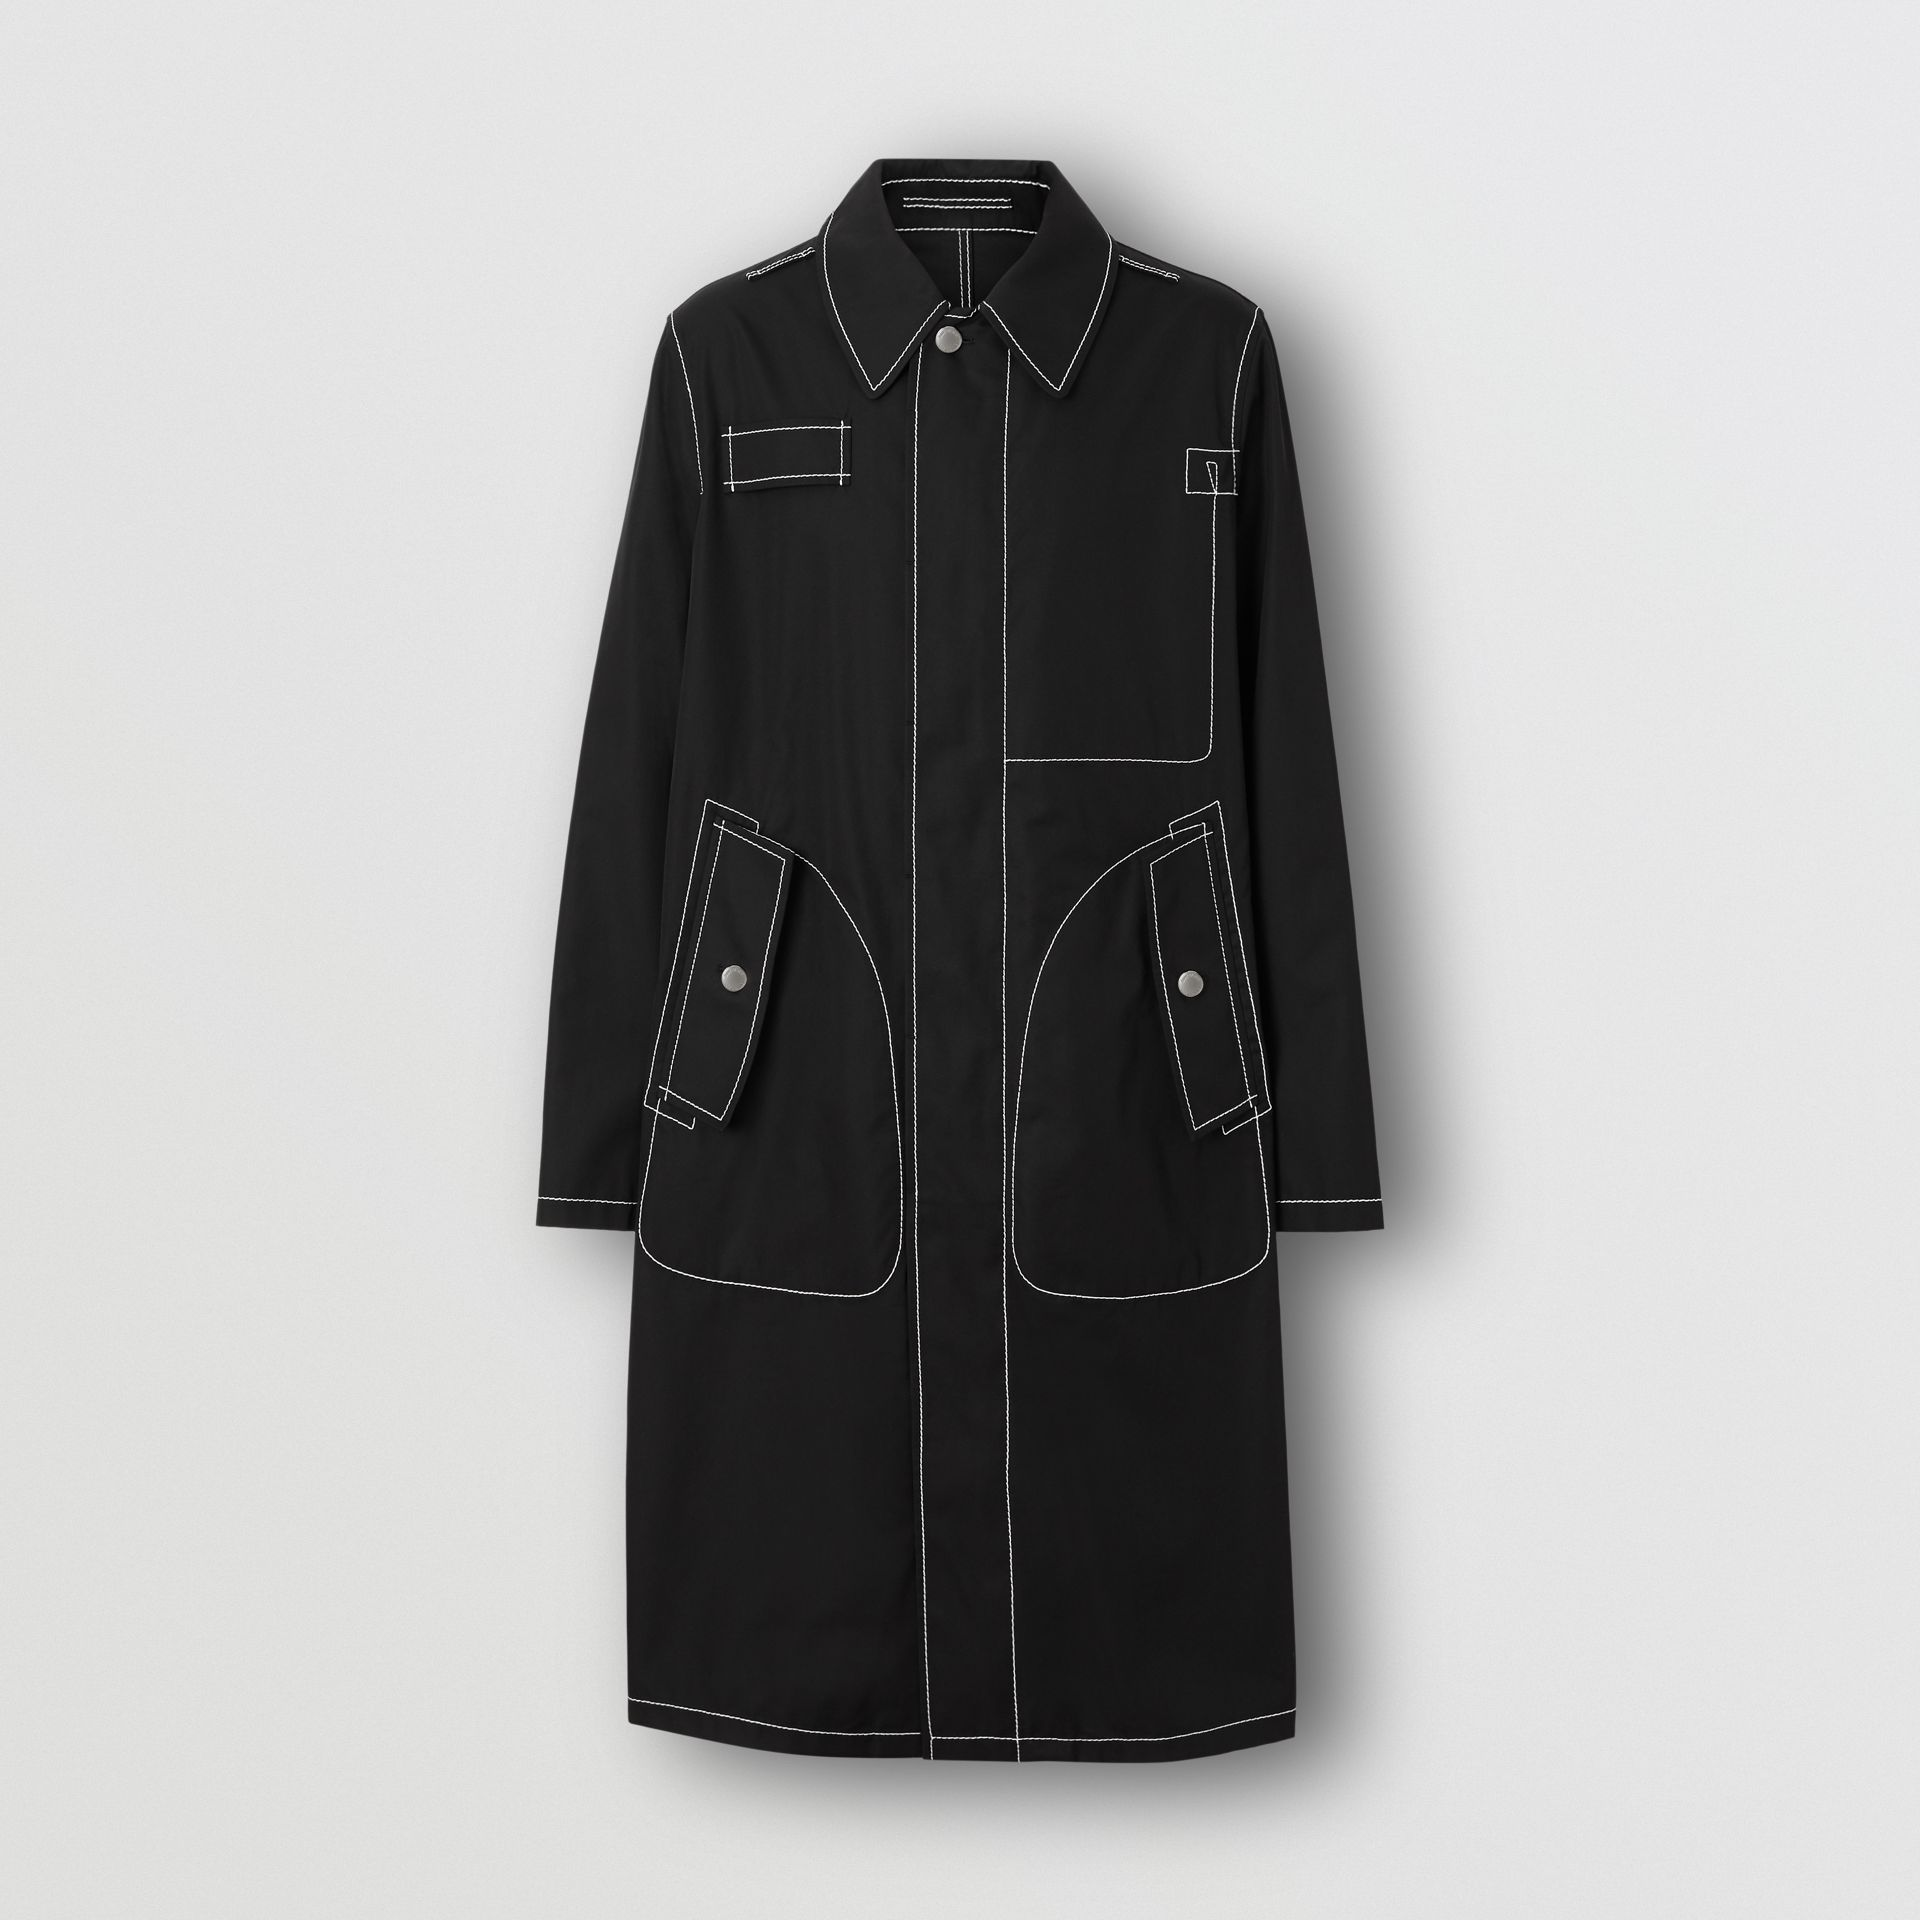 Topstitch Detail Cotton Gabardine Car Coat in Black - Men | Burberry - gallery image 3